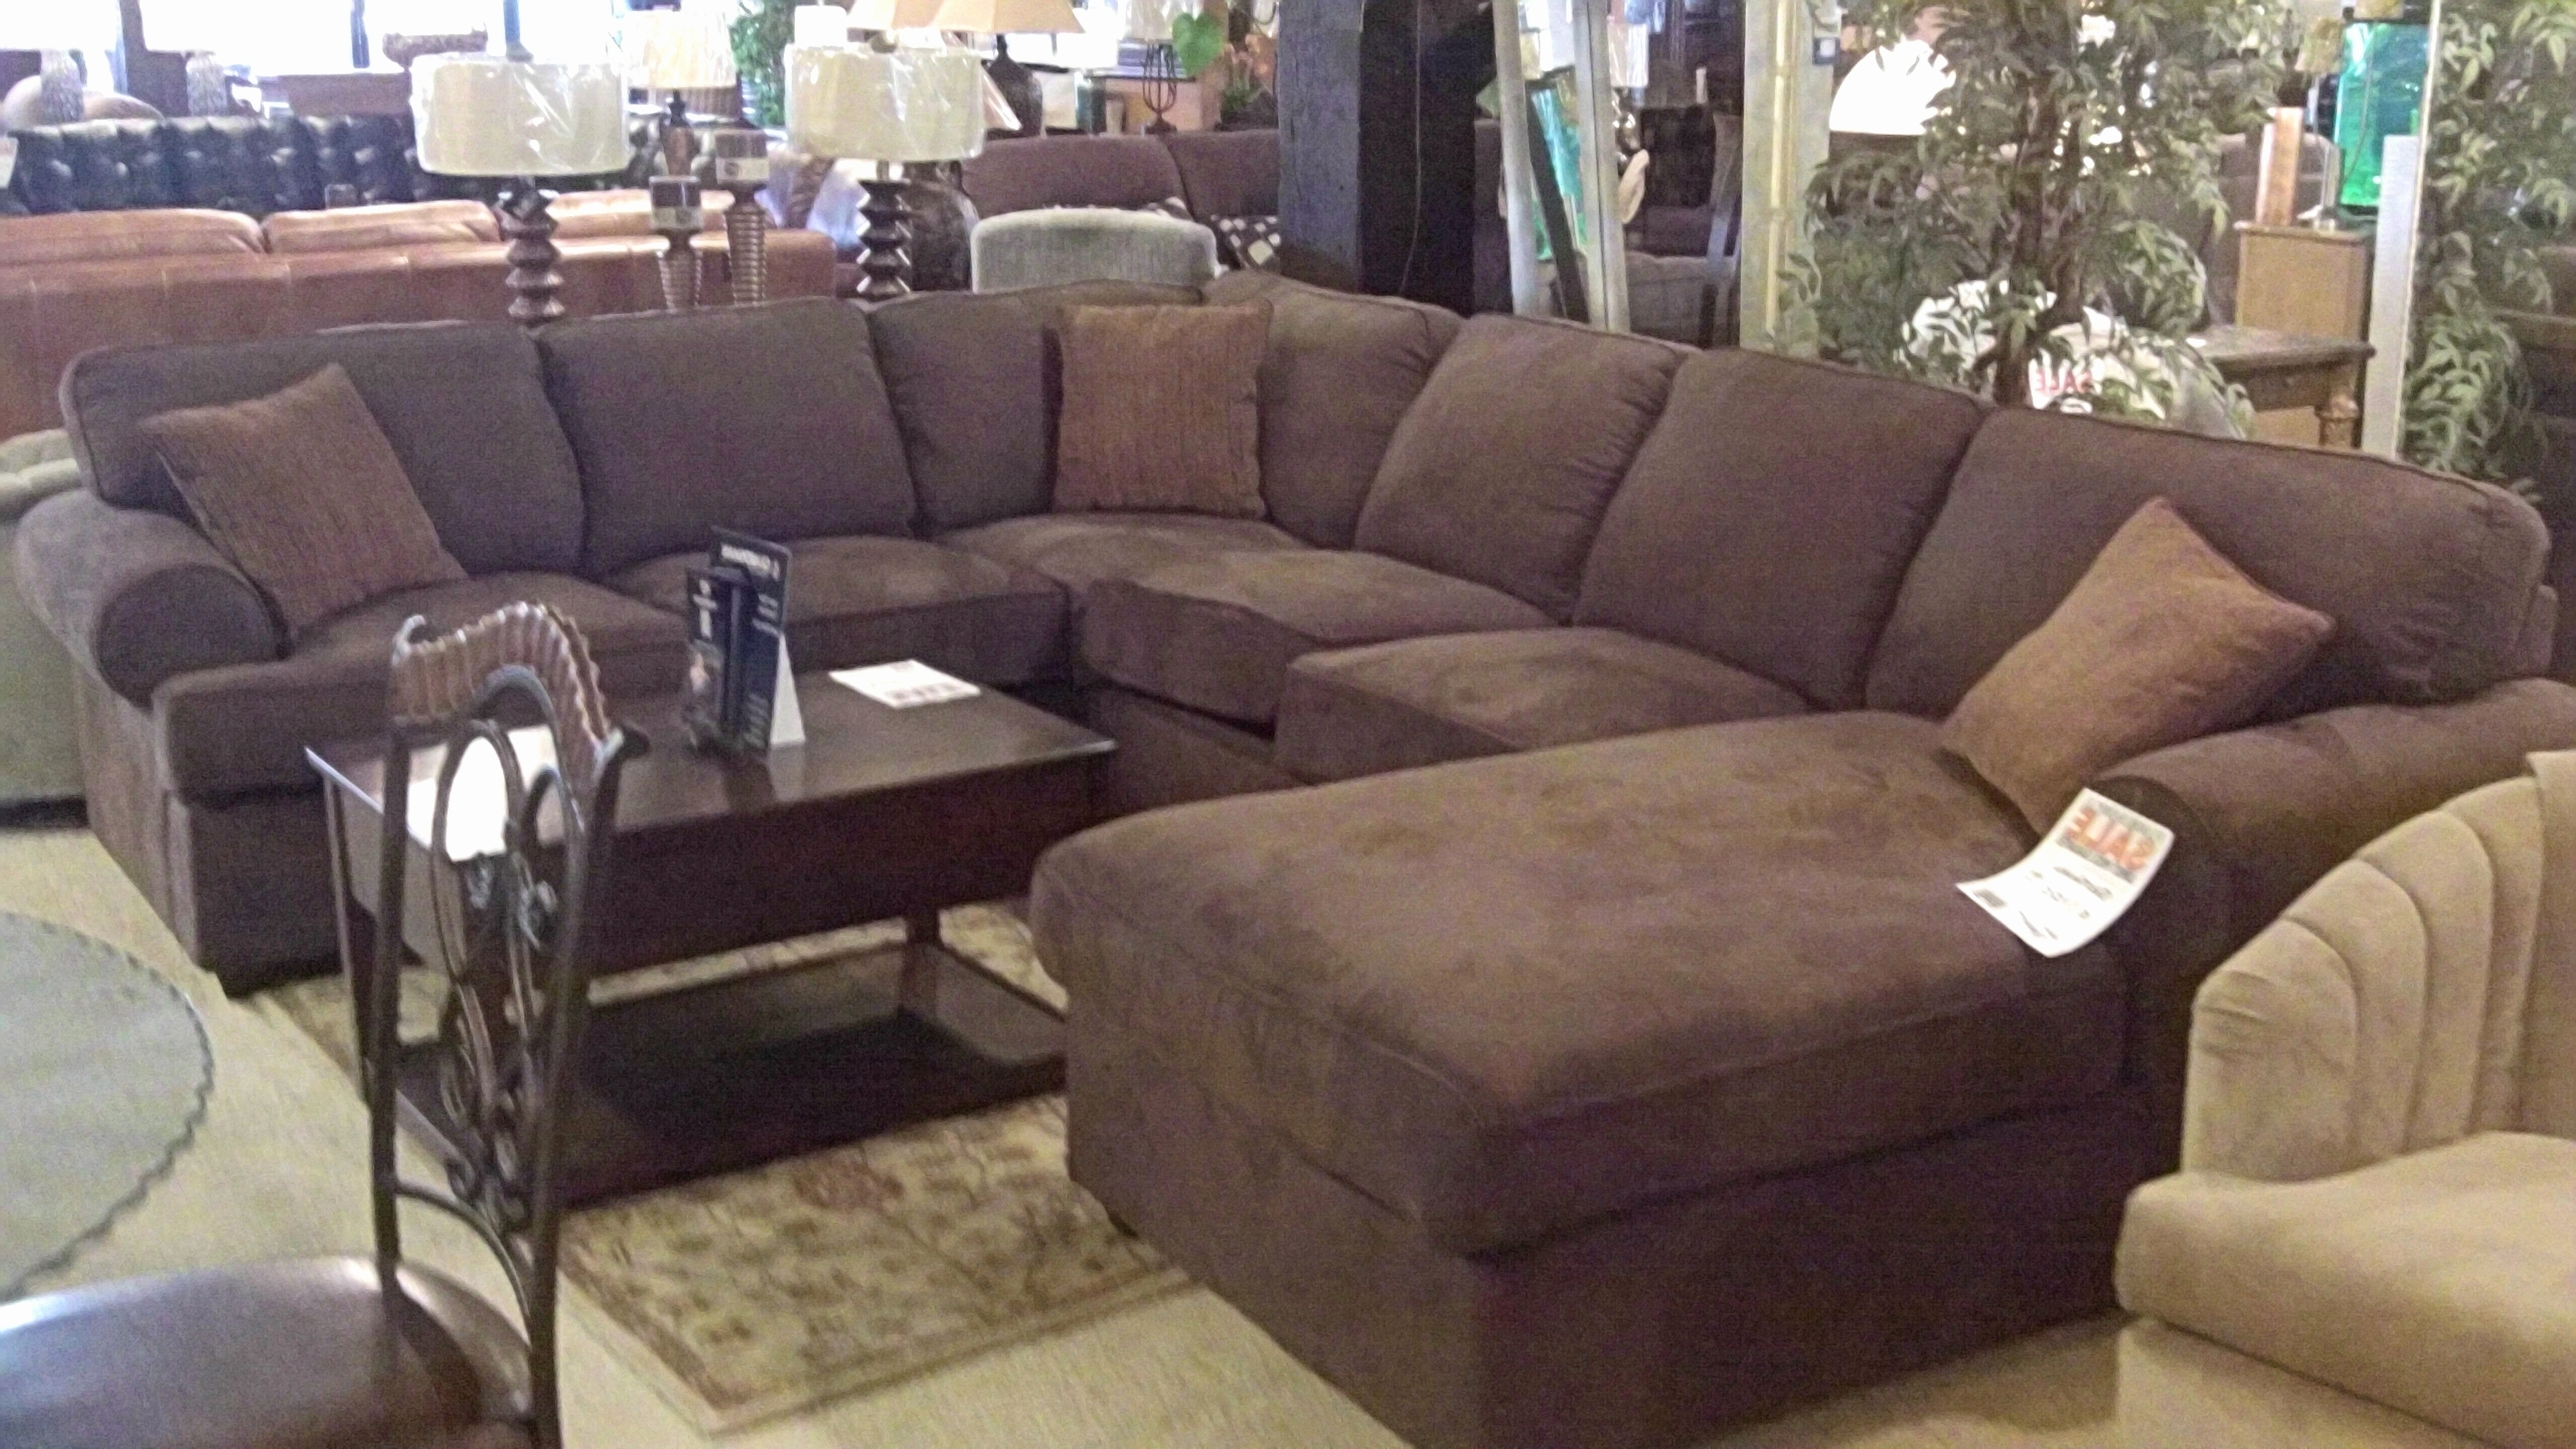 Down Filled Sofas Throughout Widely Used Luxury Down Filled Sectional Sofa 2018 – Couches And Sofas Ideas (View 3 of 15)